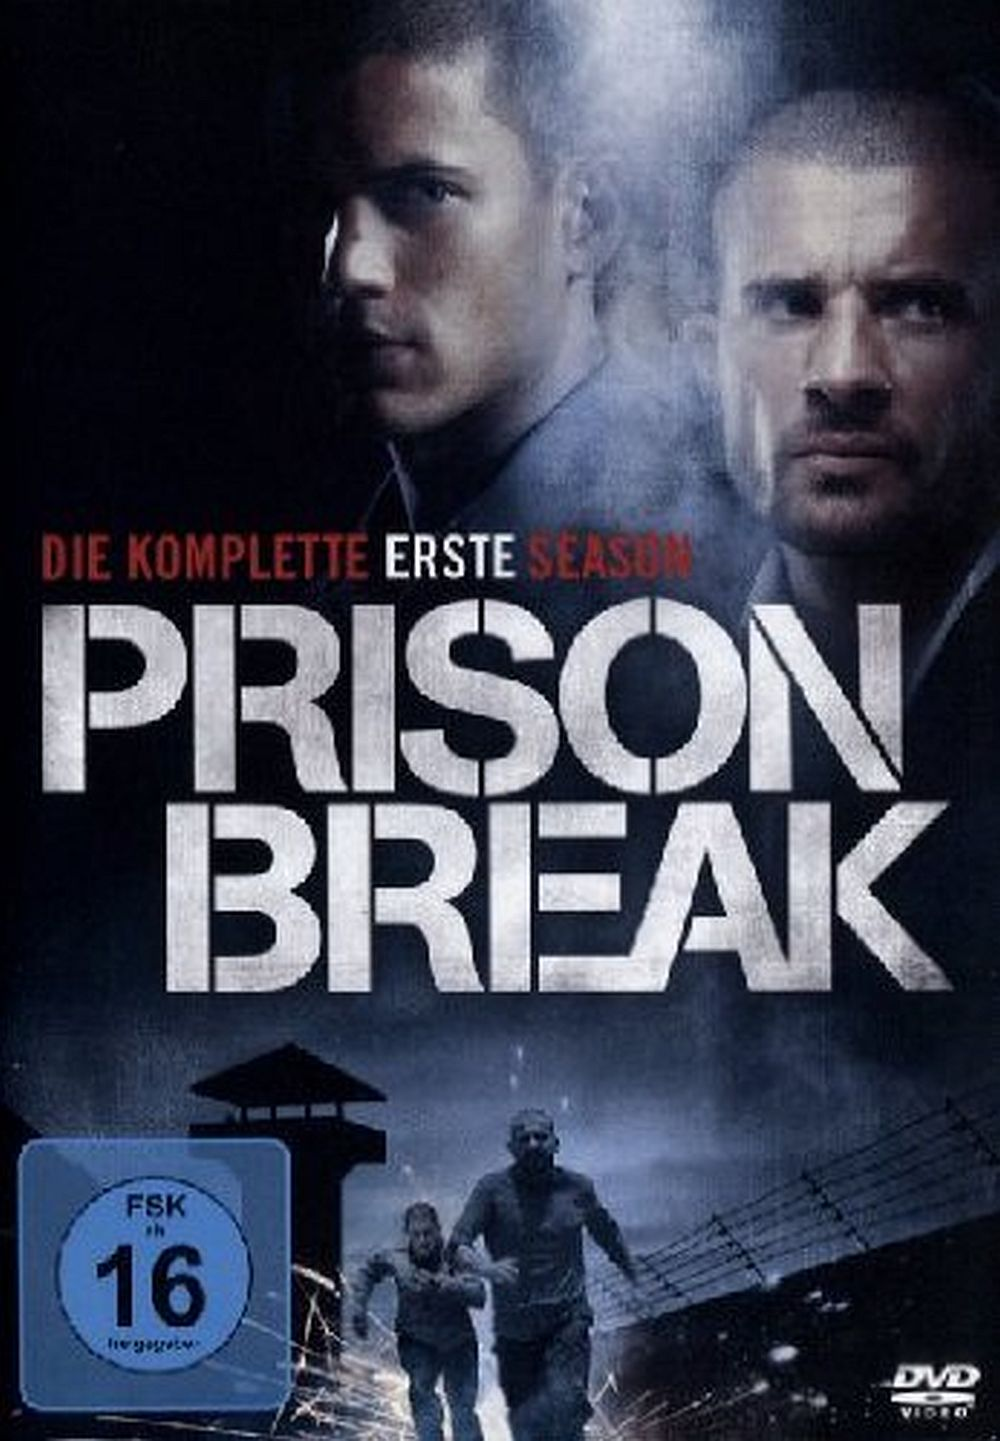 Prison Break Anschauen